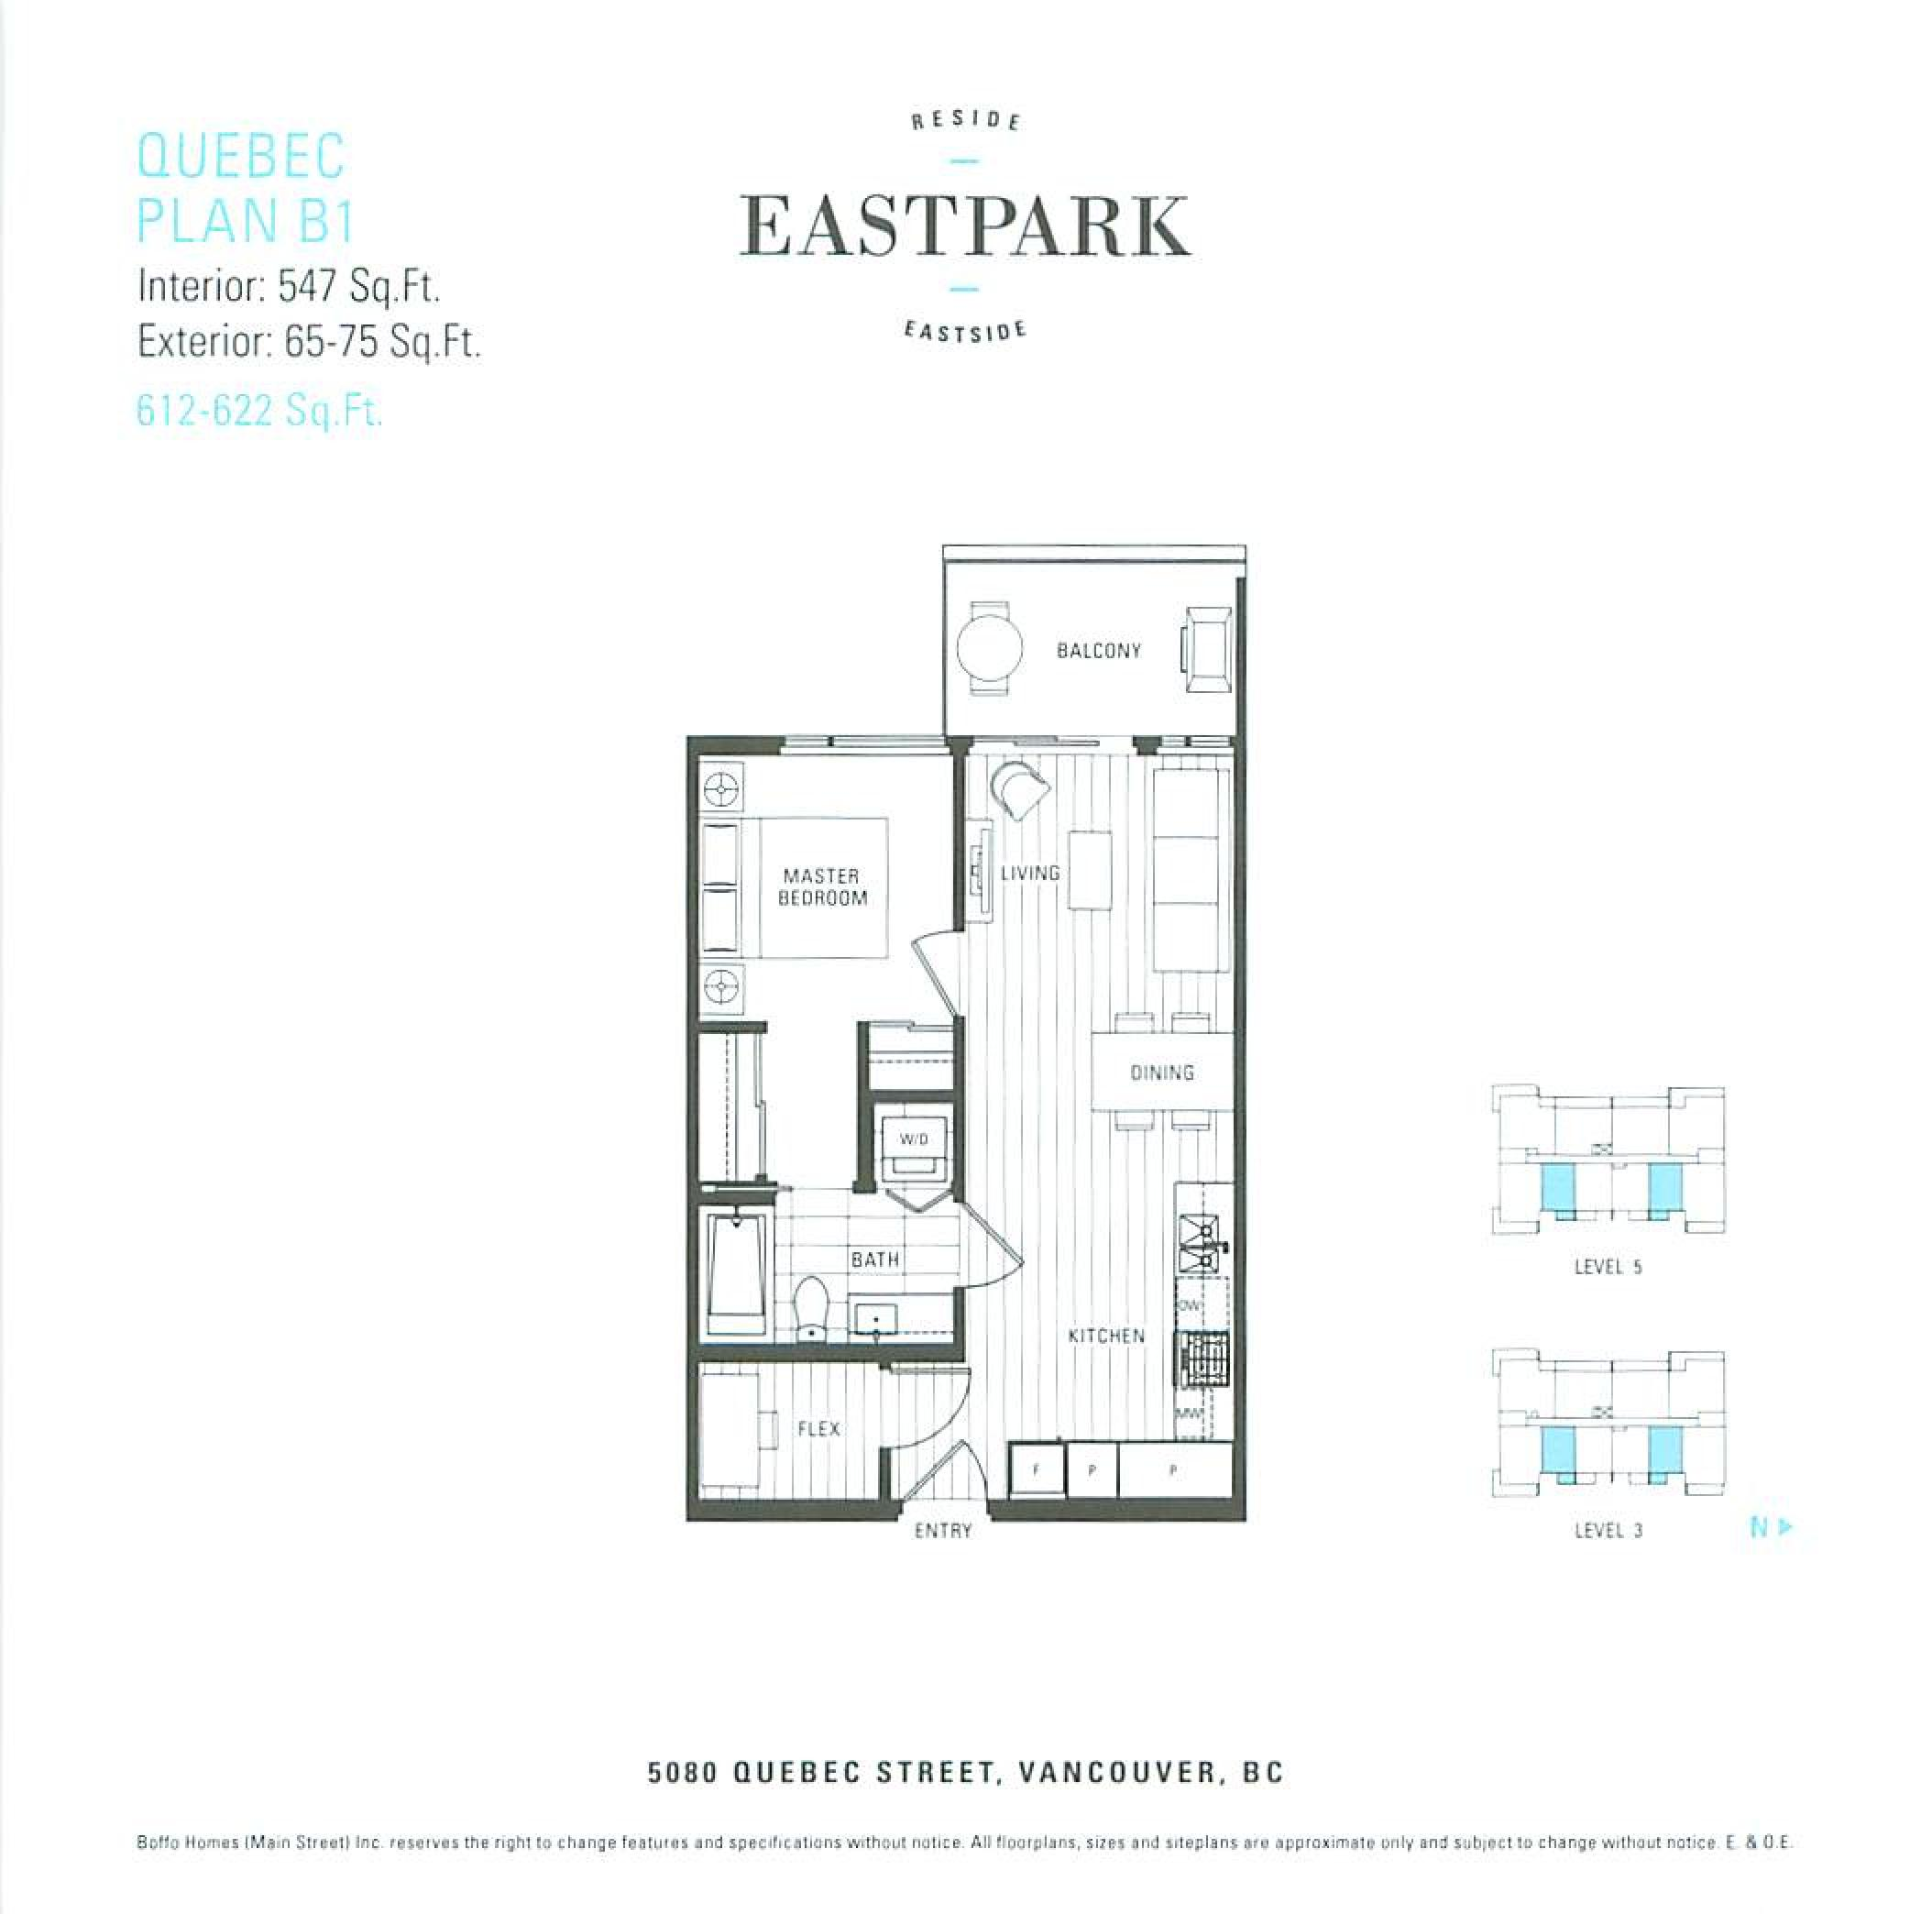 EastPark Quebec Smaller Floor Plans Mike Stewart-page-002